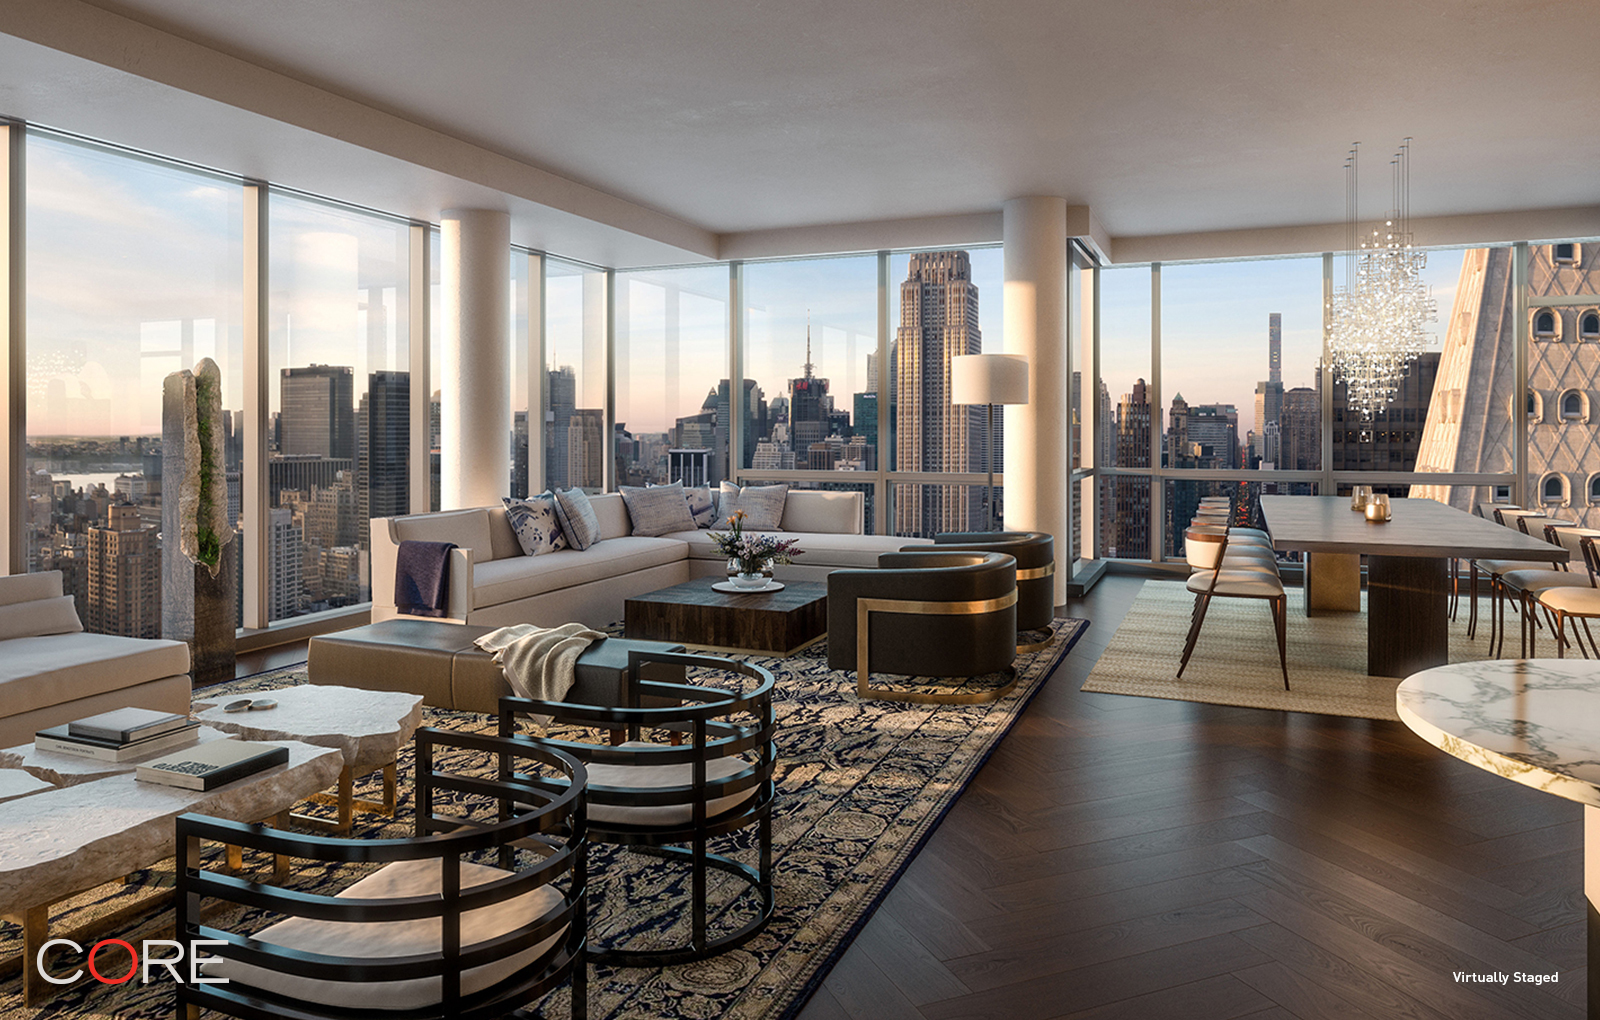 Condominium for Sale at One Madison, 23 East 22nd Street Ph55/56 23 East 22nd Street New York, New York 10010 United States